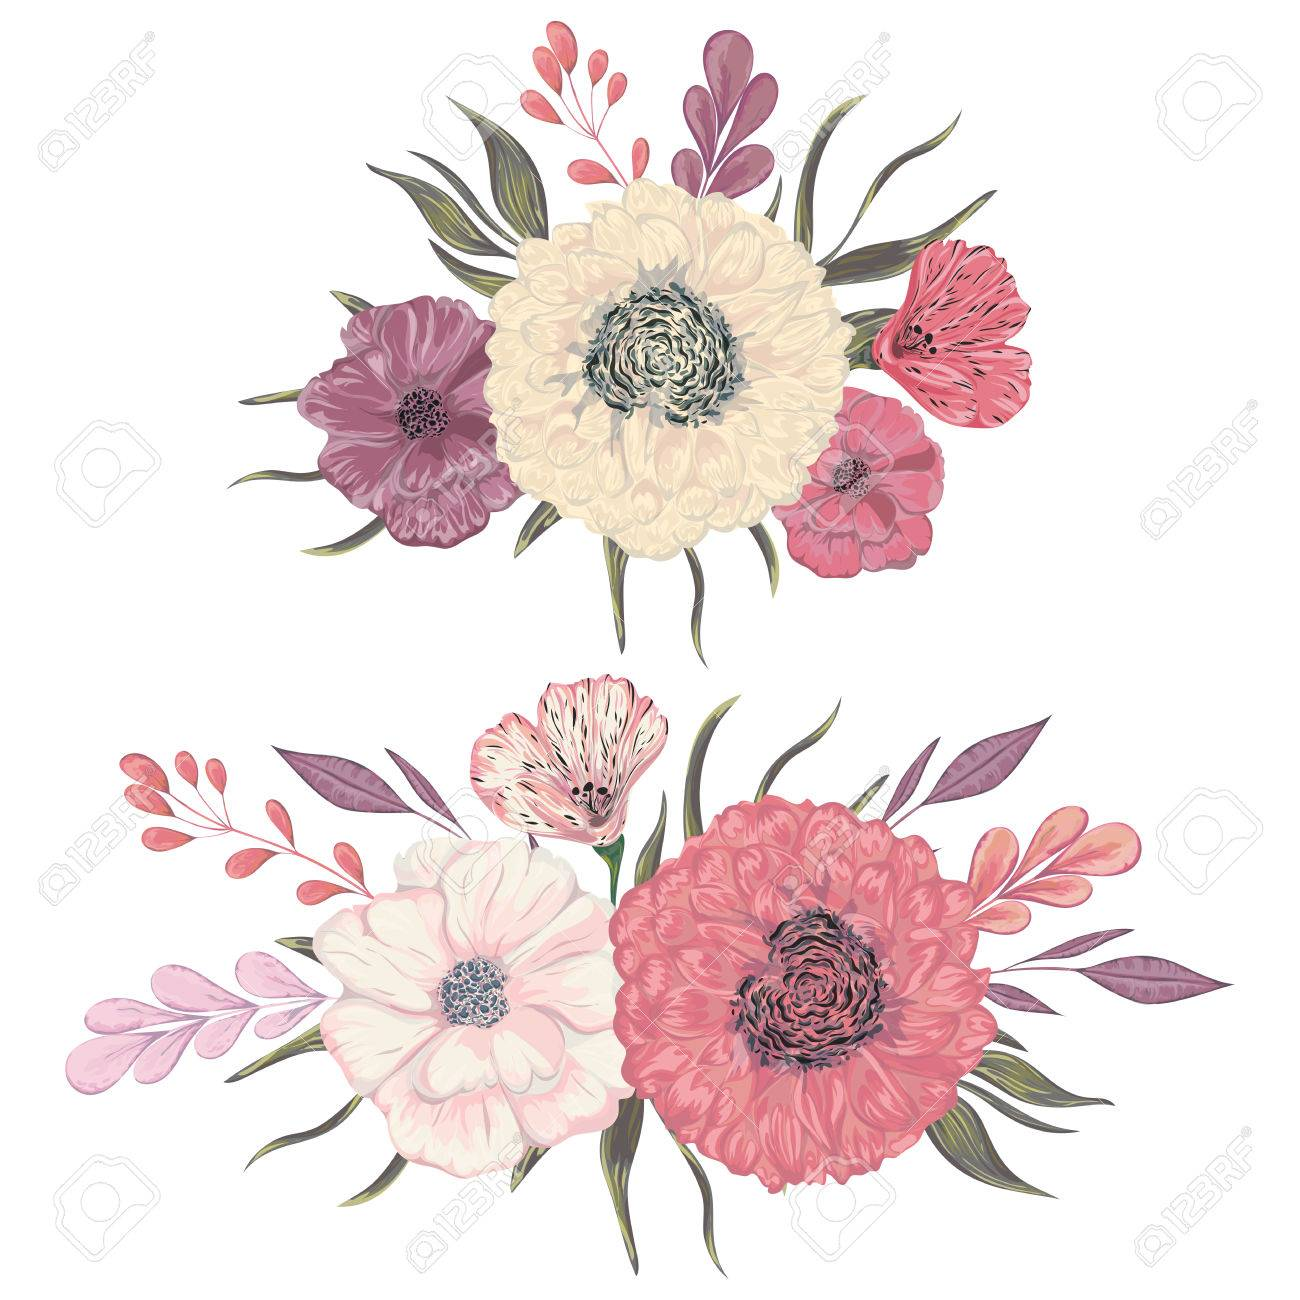 Collection Decorative Floral Design Elements For Wedding Invitations